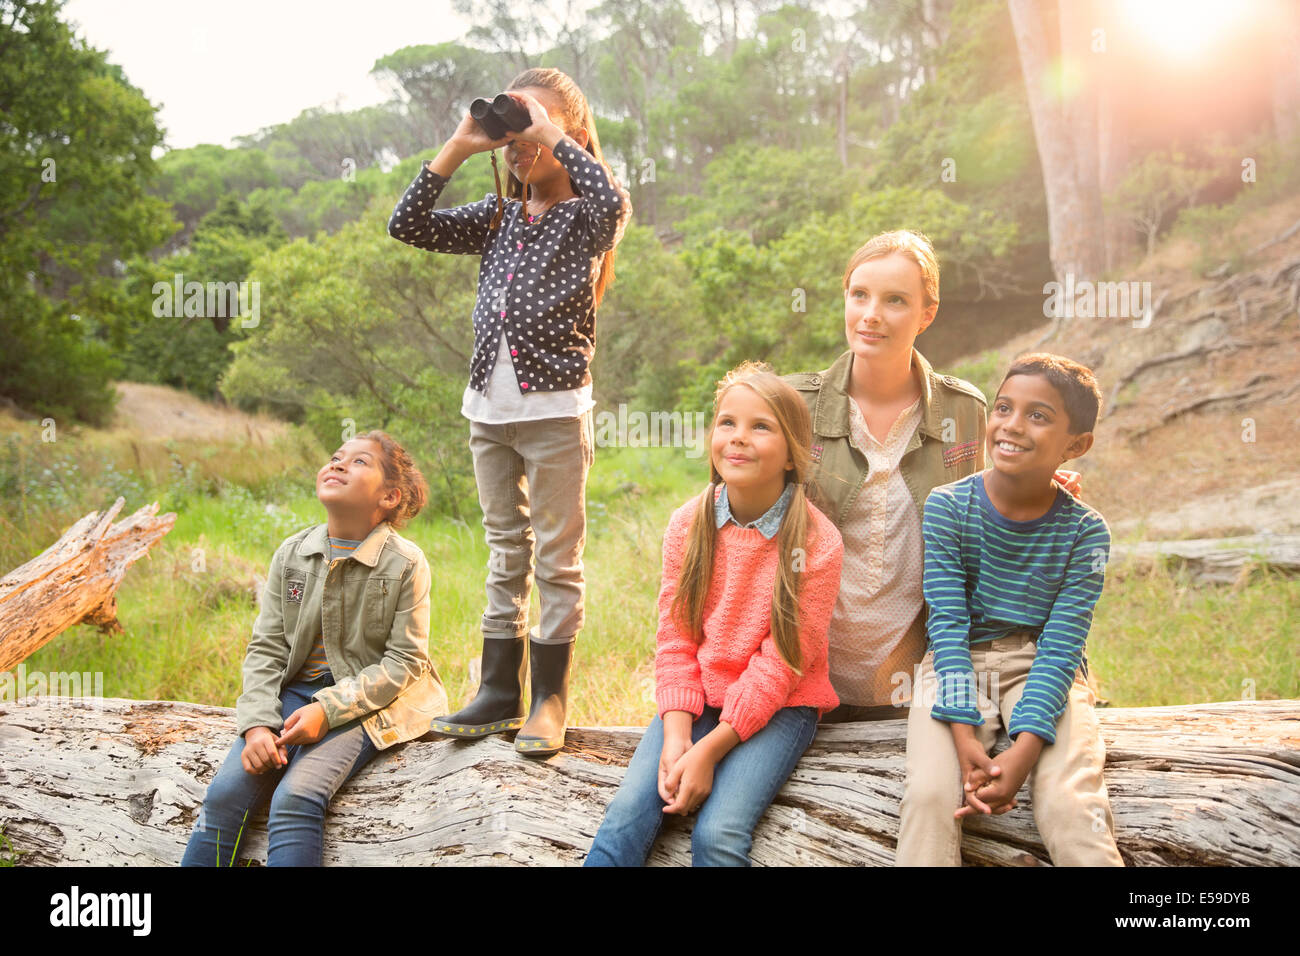 Students and teacher using binoculars in forest Stock Photo